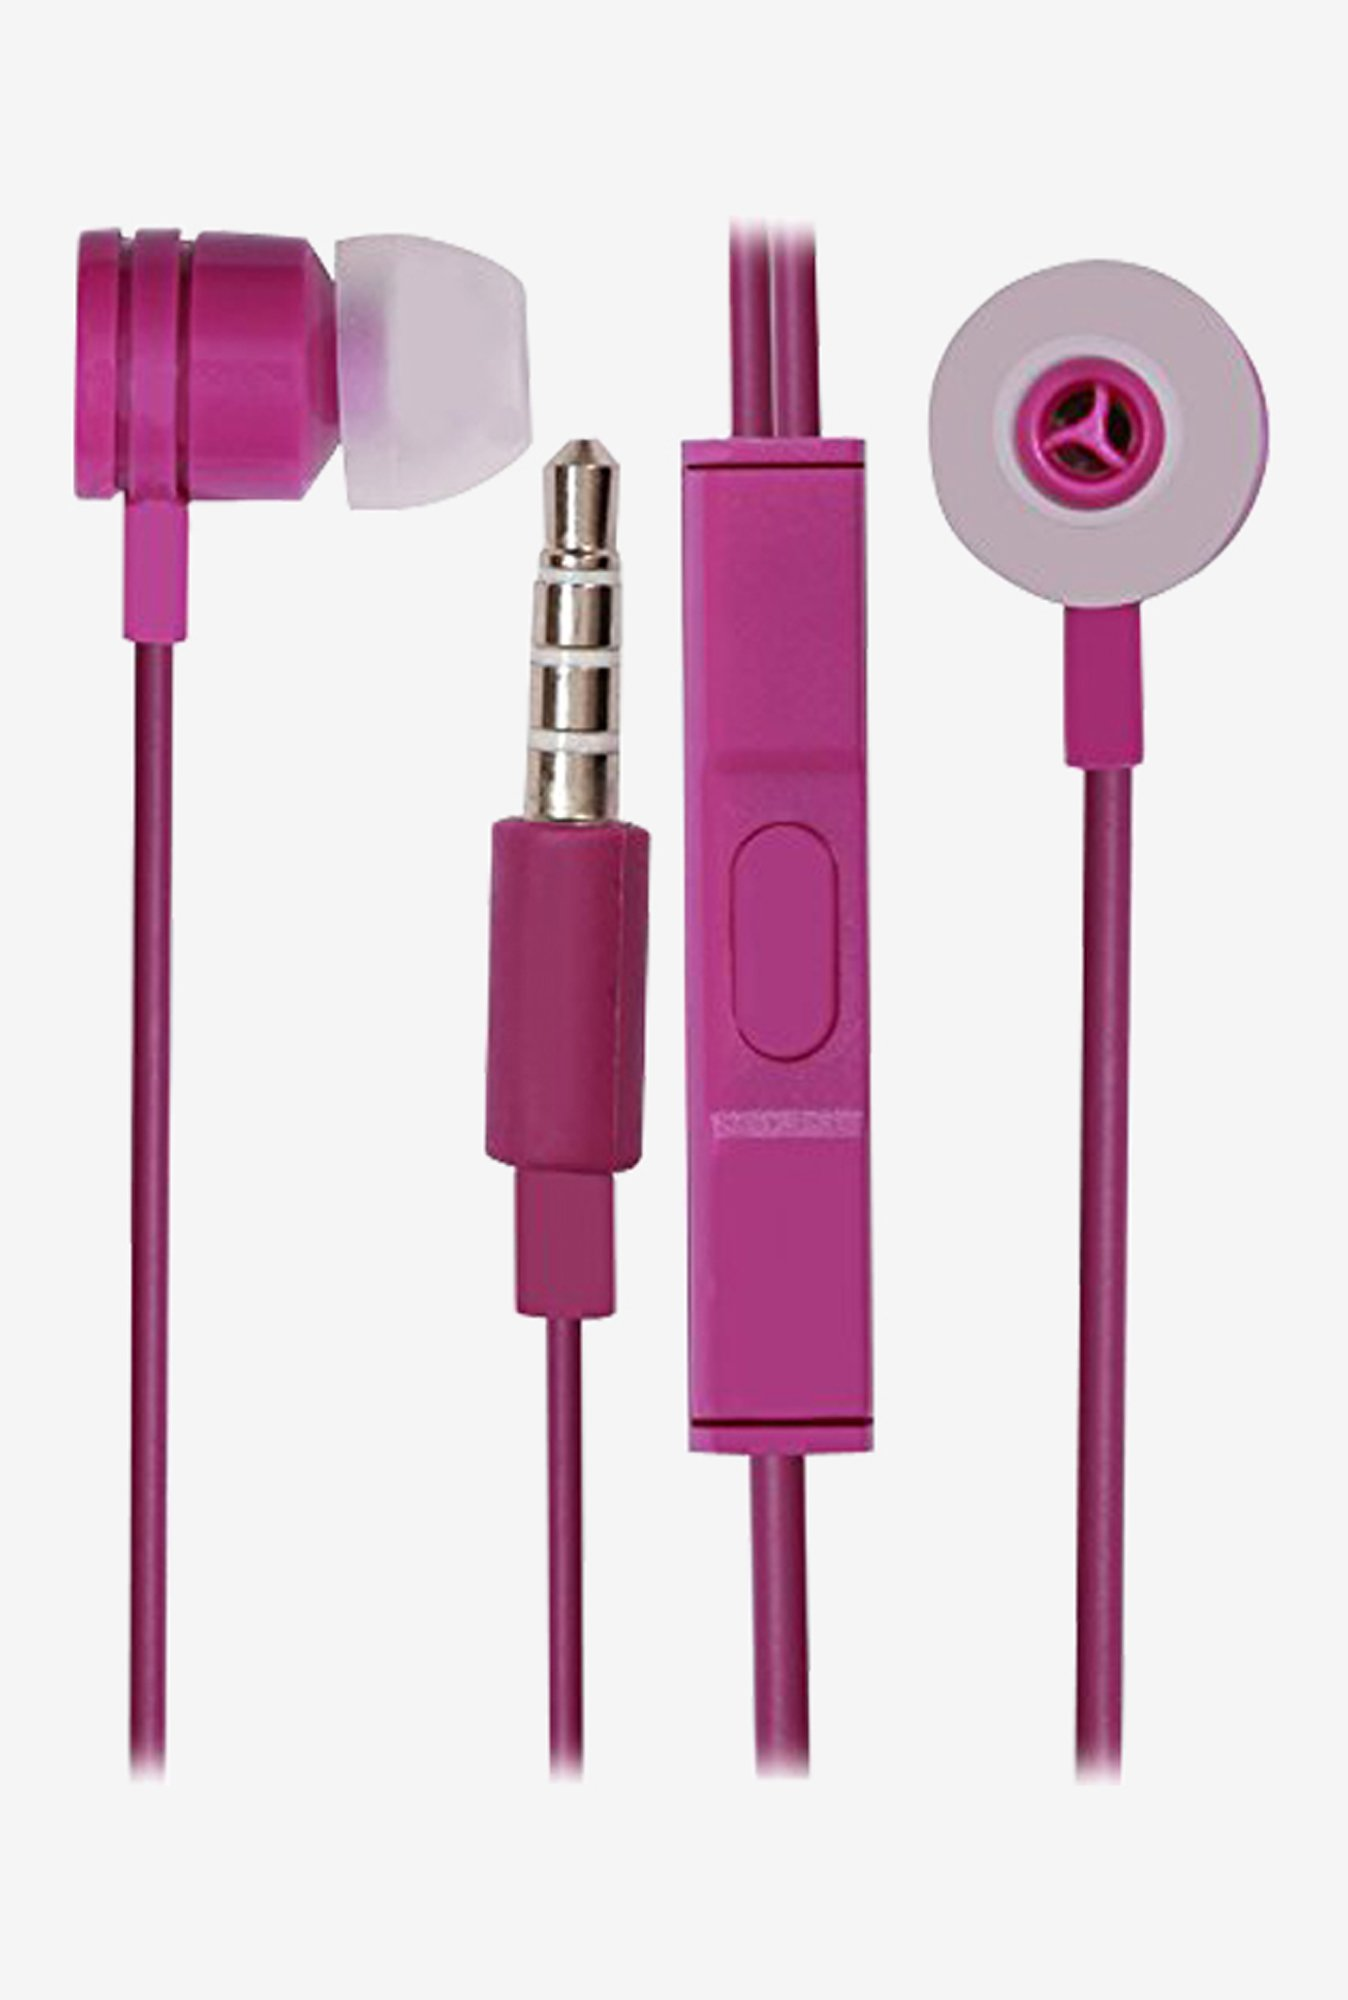 Jkobi In The Ear Bud Headset Earphones (Purple)